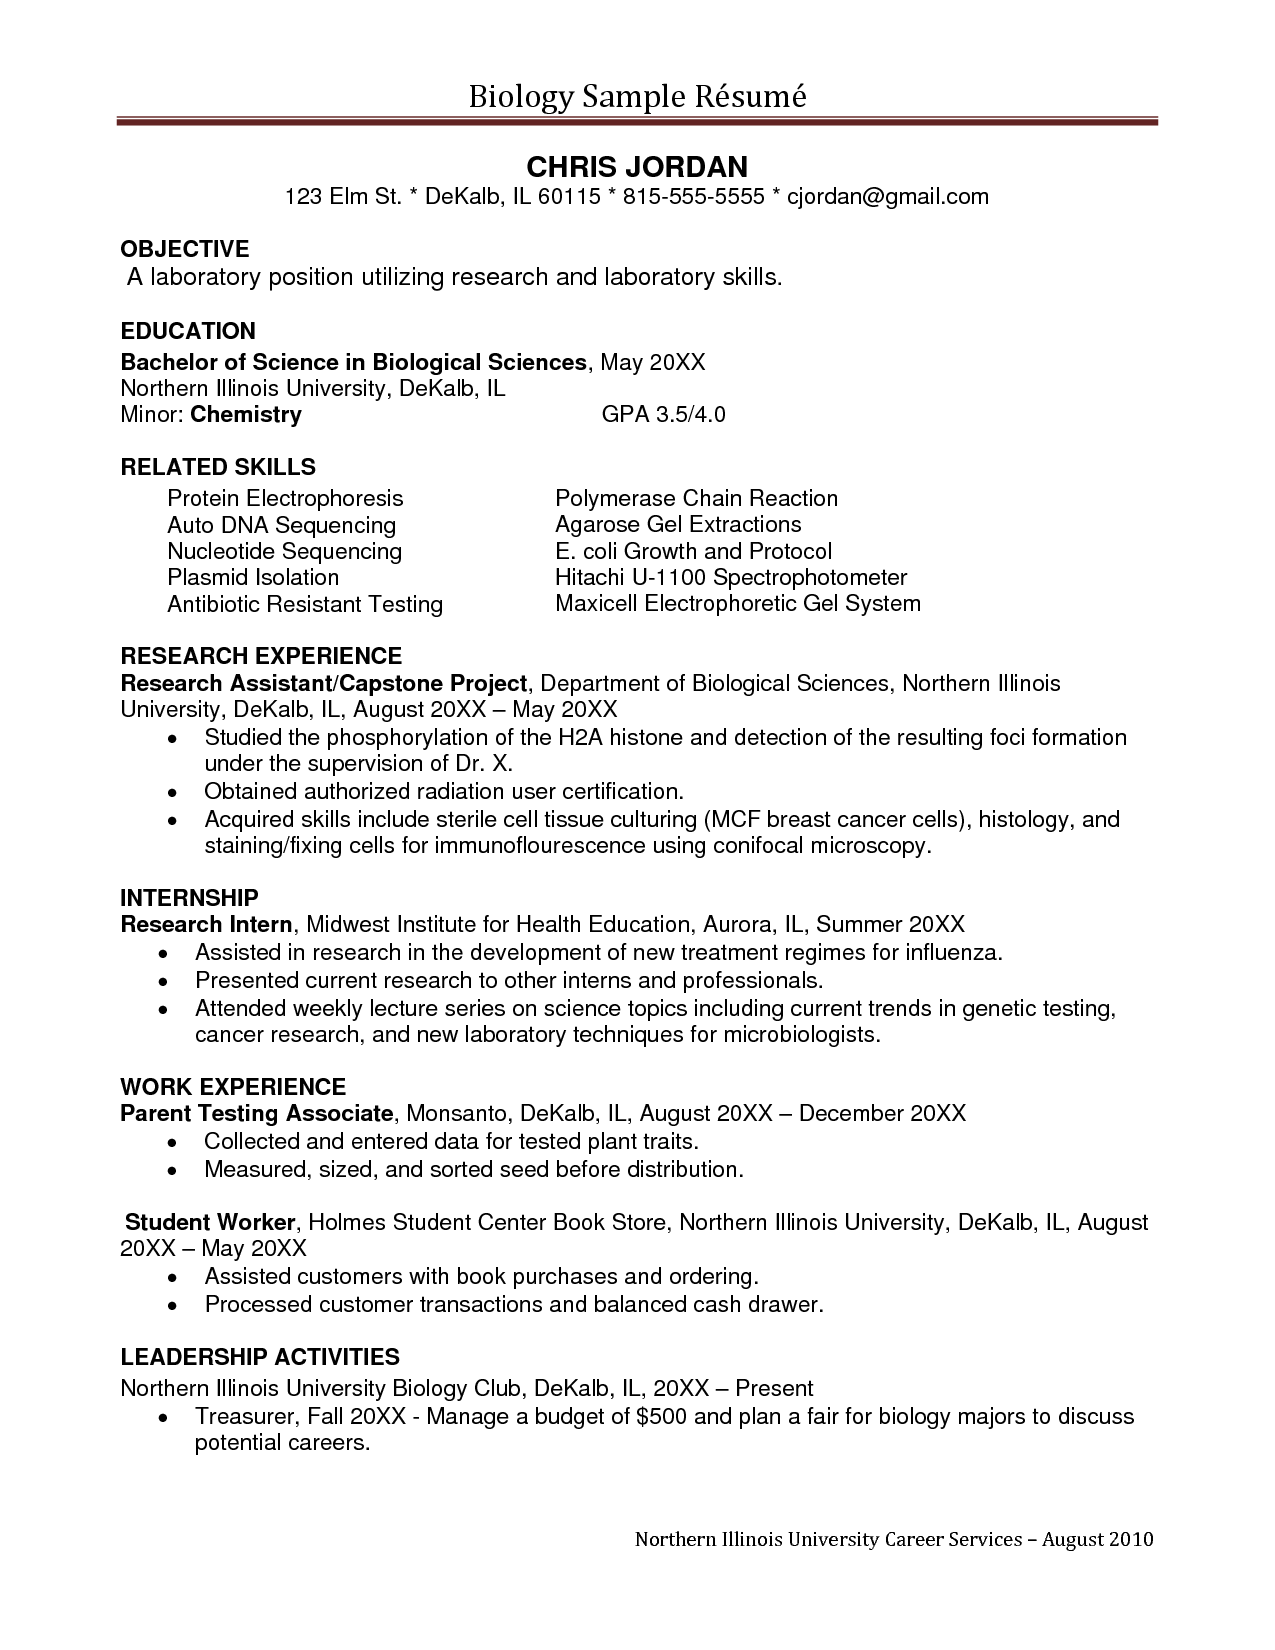 research assistant resume sample objective research assistant resume sample objective admin assistant objective resume sample - What To Write In The Objective Of A Resume